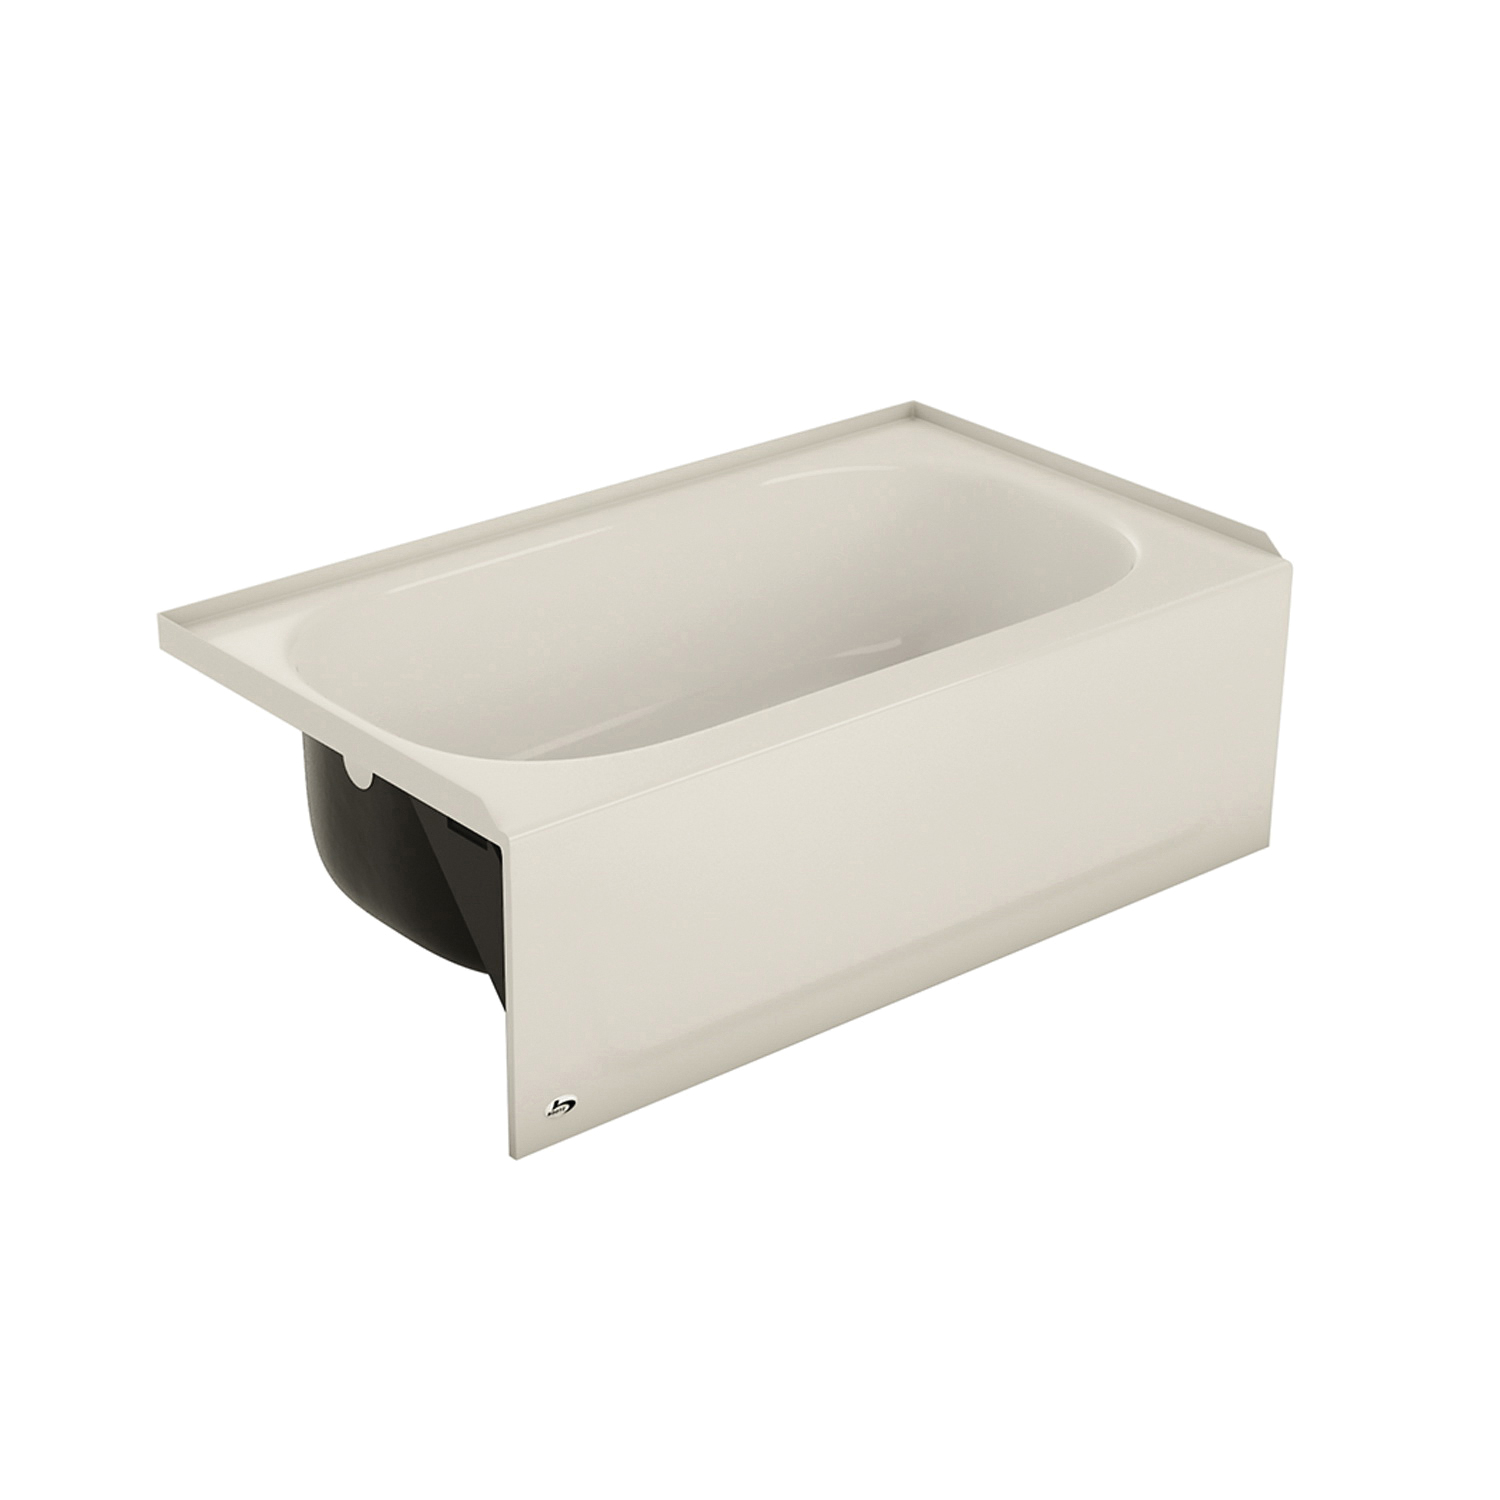 BOOTZ® 011-3379-96 Honolulu Bathtub, Rectangular, 46-1/2 in L x 27 in W, Left Drain, Biscuit, Domestic